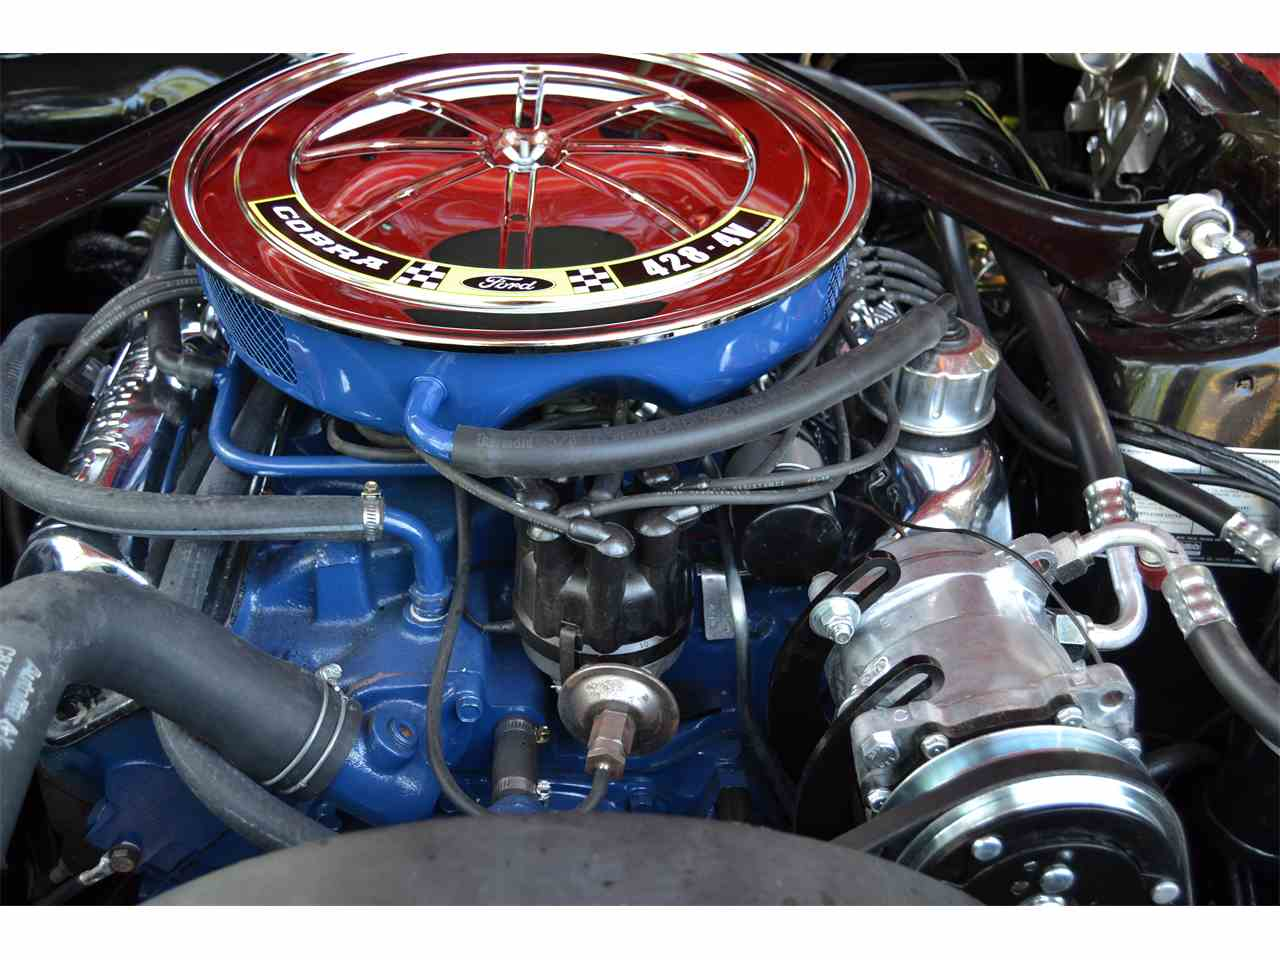 Large Picture of Classic '69 Ford Mustang Mach 1 - $68,500.00 Offered by a Private Seller - FQAH